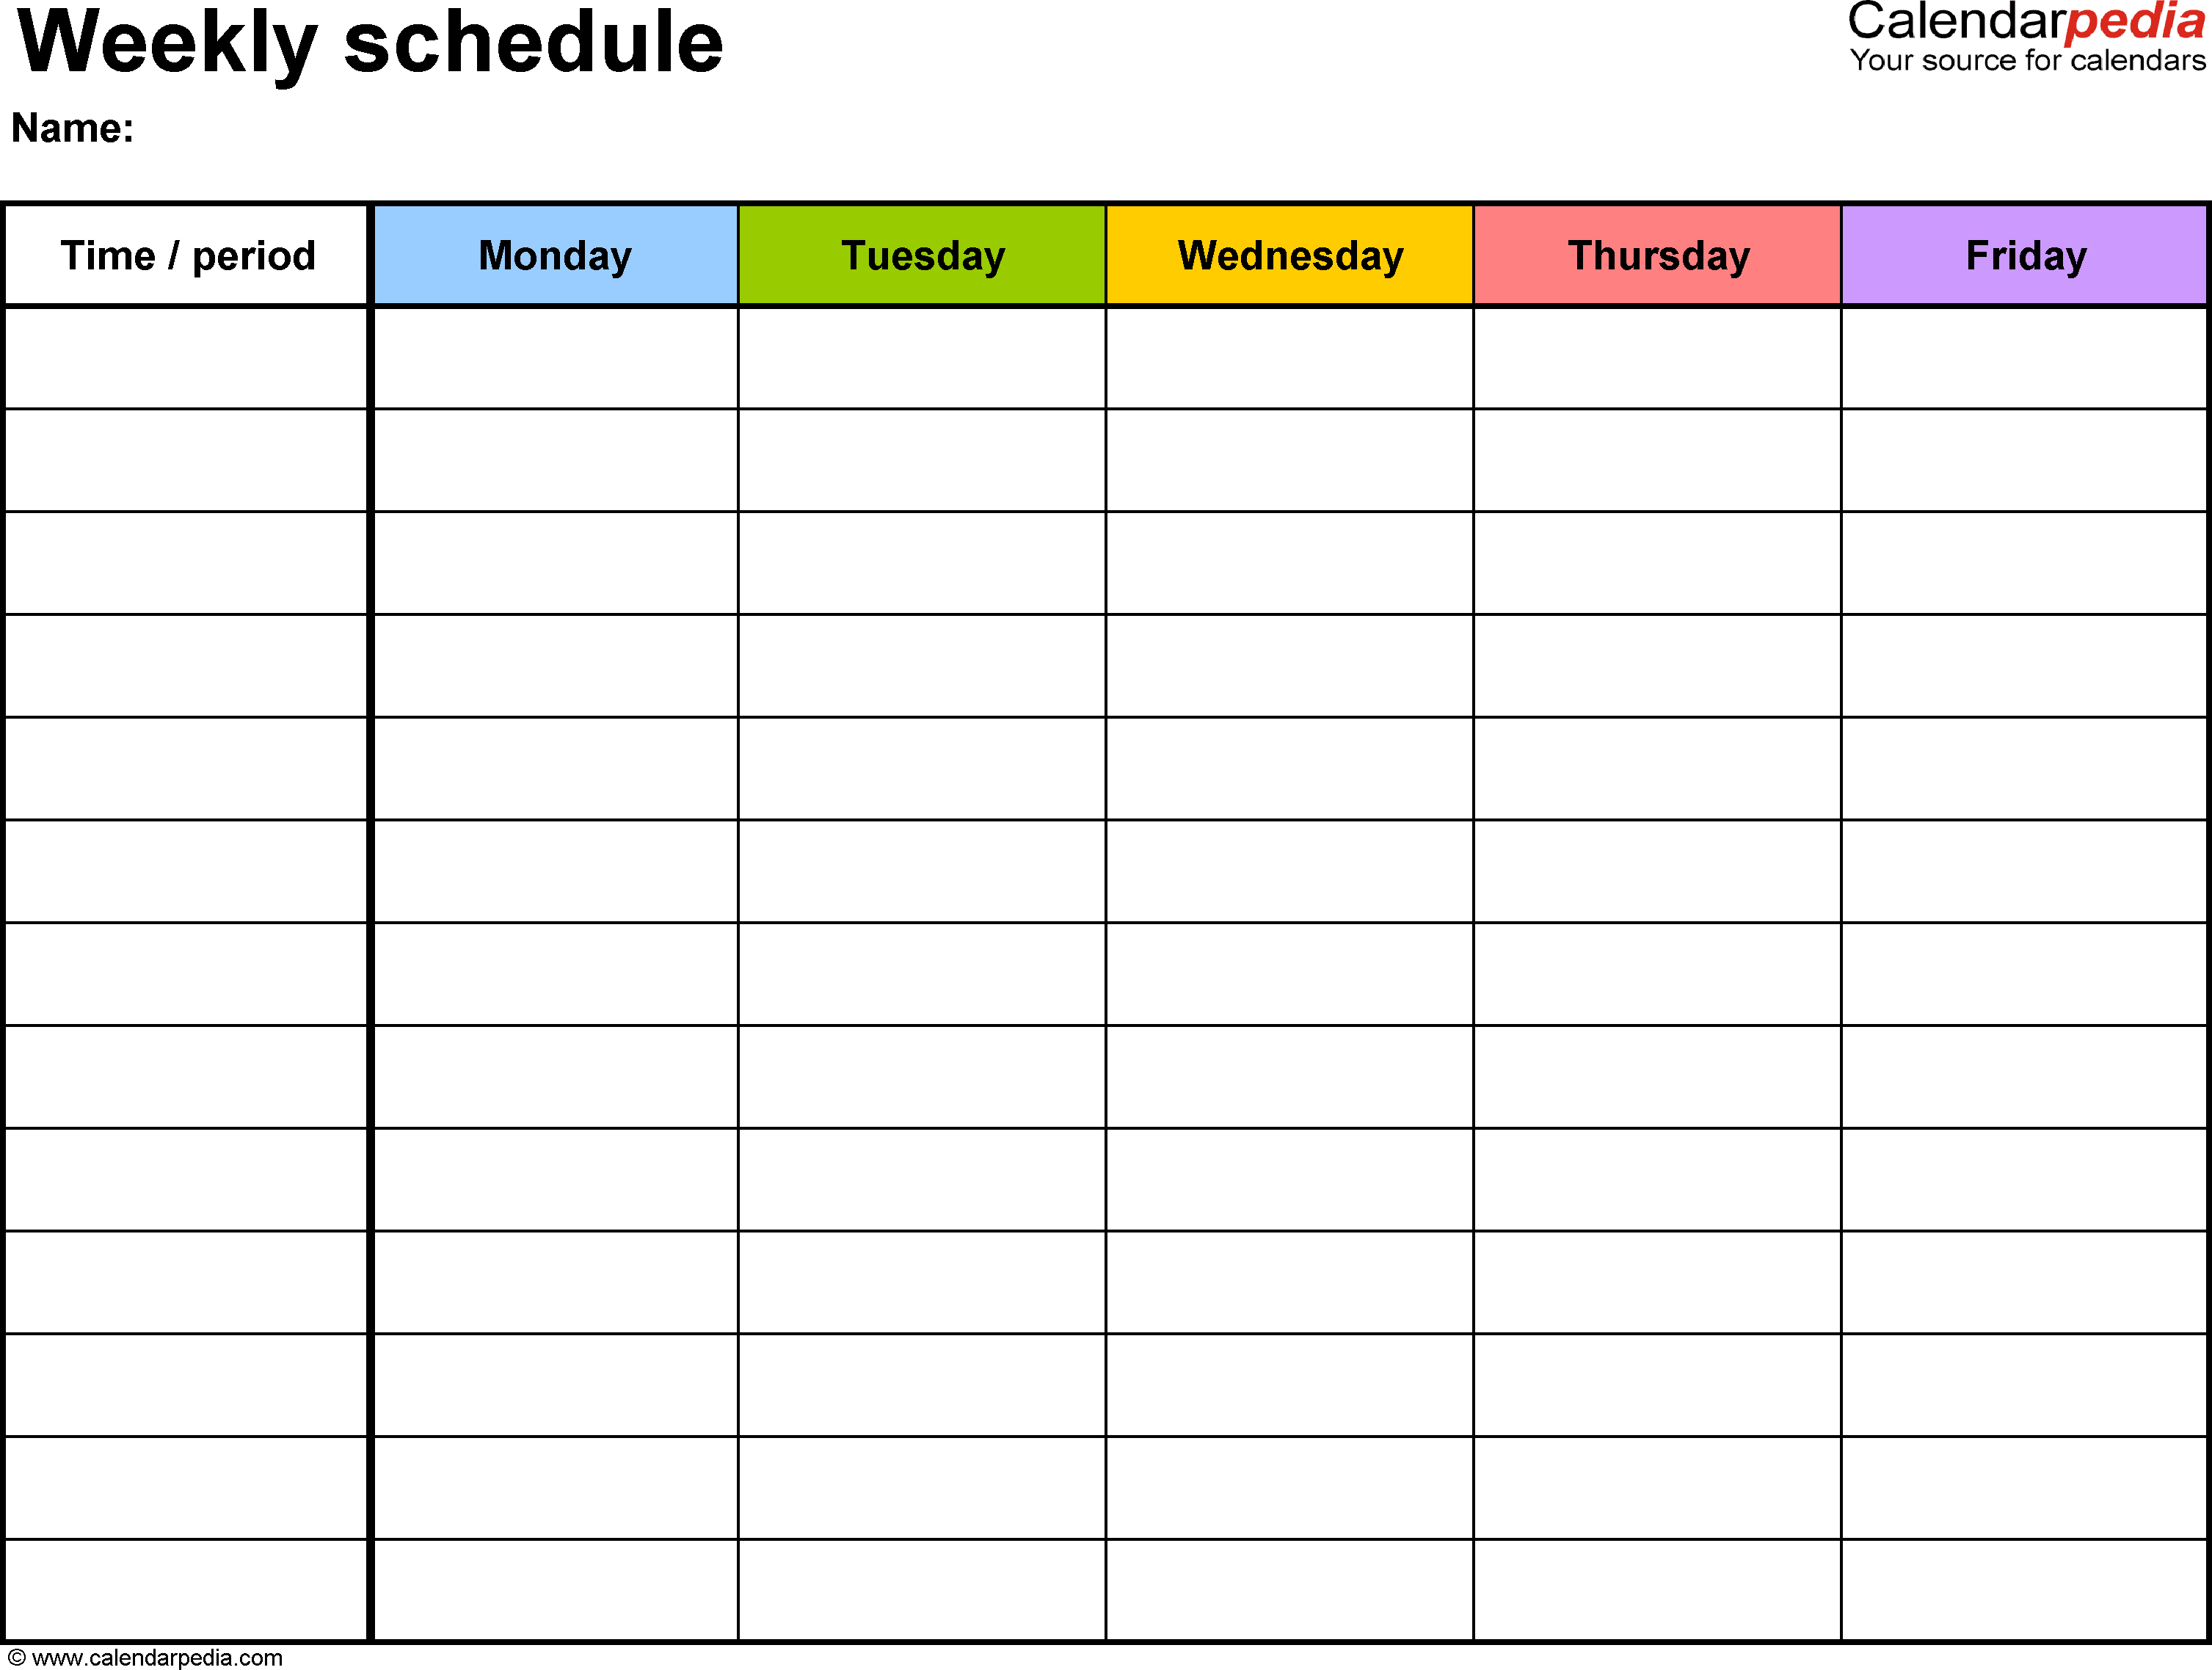 Free Weekly Schedule Templates For Word - 18 Templates - Free Printable Daily Schedule Chart